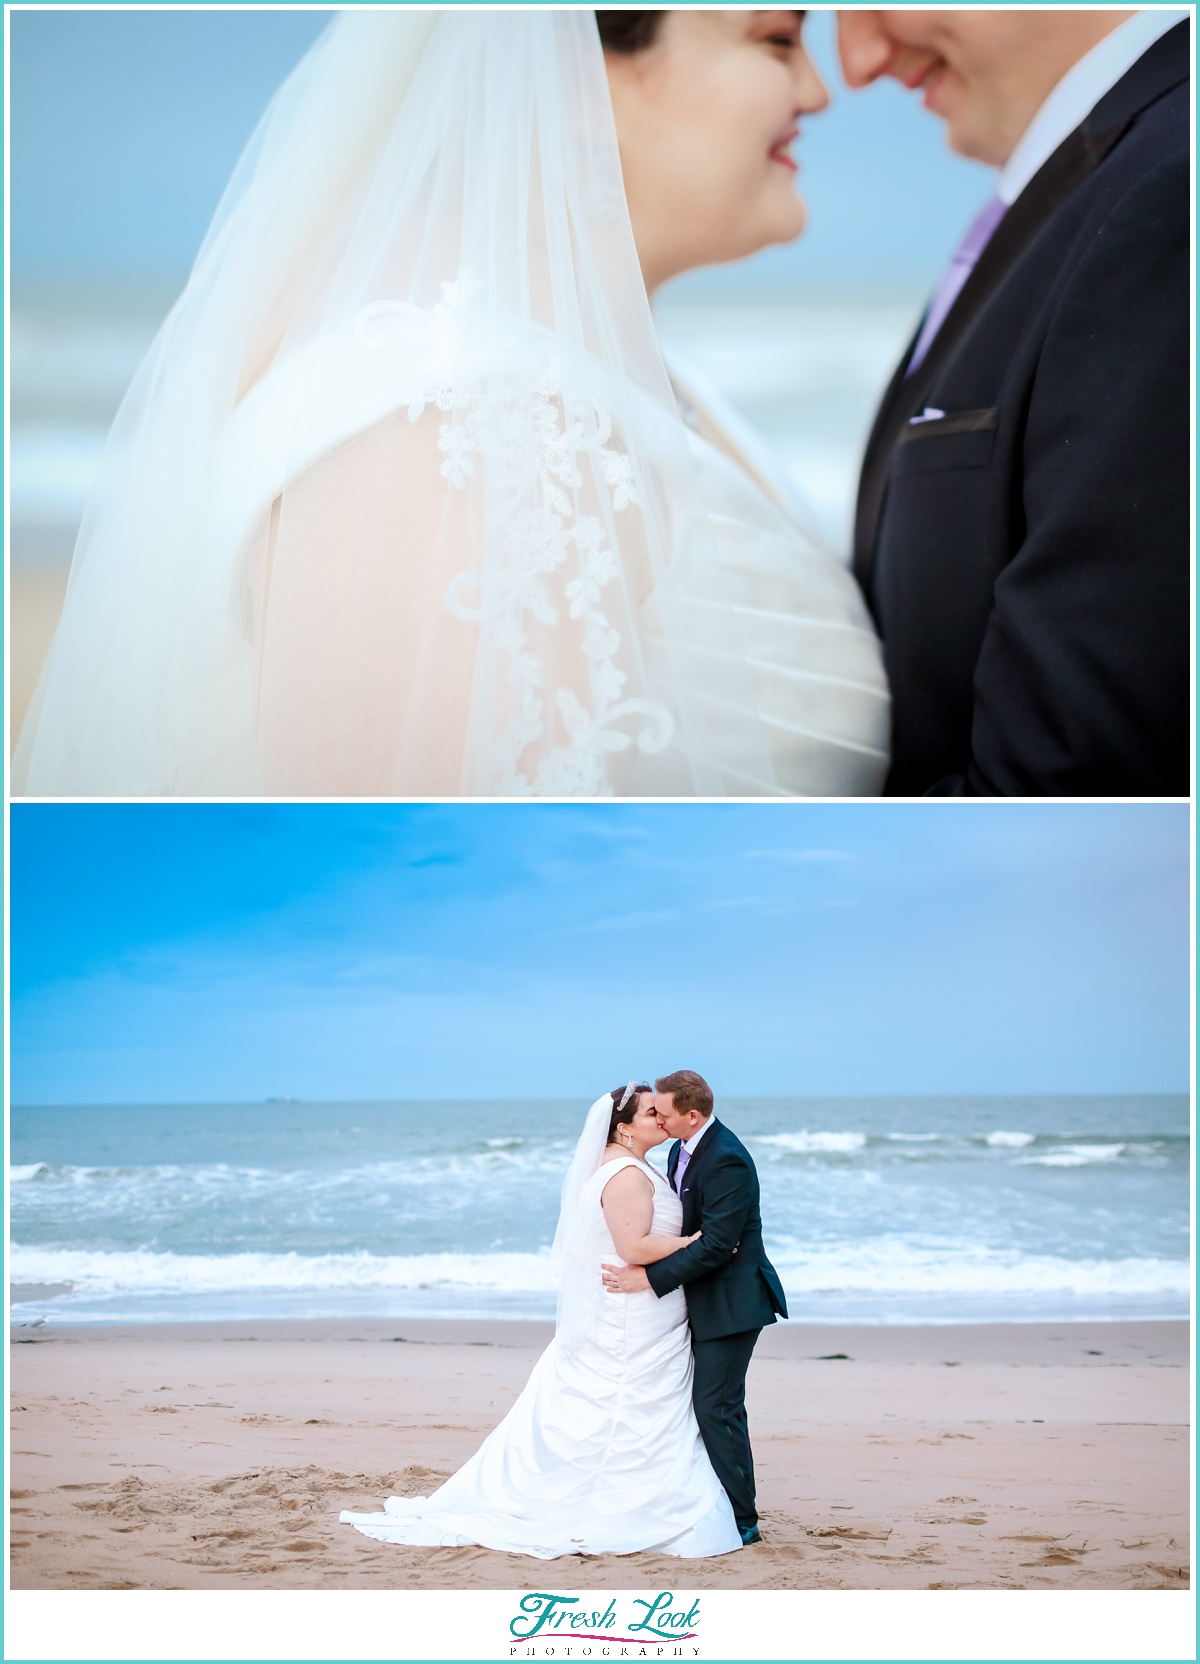 Virginia Beach sunset with bride and groom